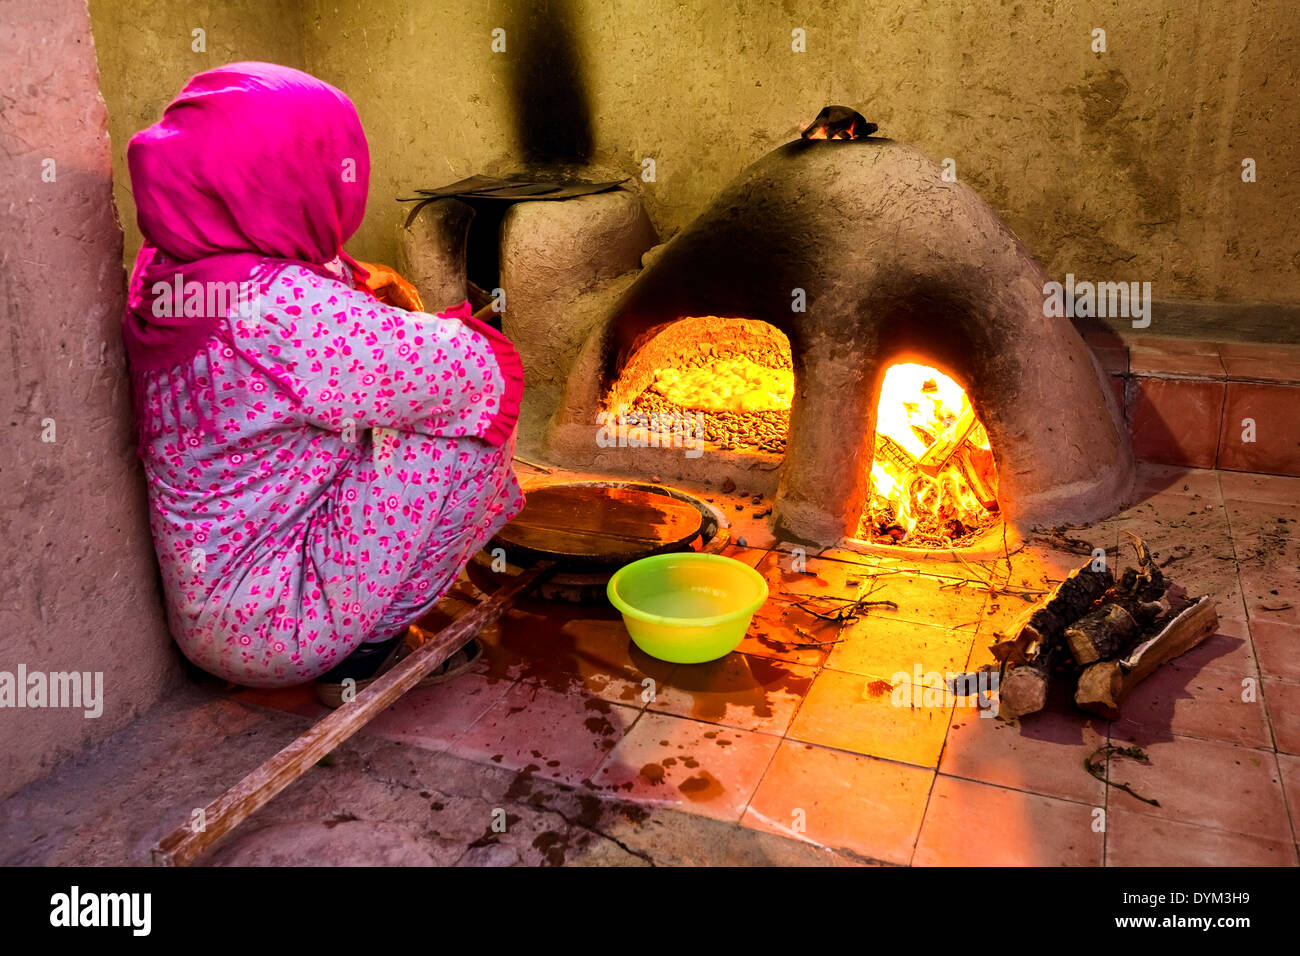 An Moroccan woman making traditional bread in an wood-burning oven, Scoura, Morocco, Africa - Stock Image